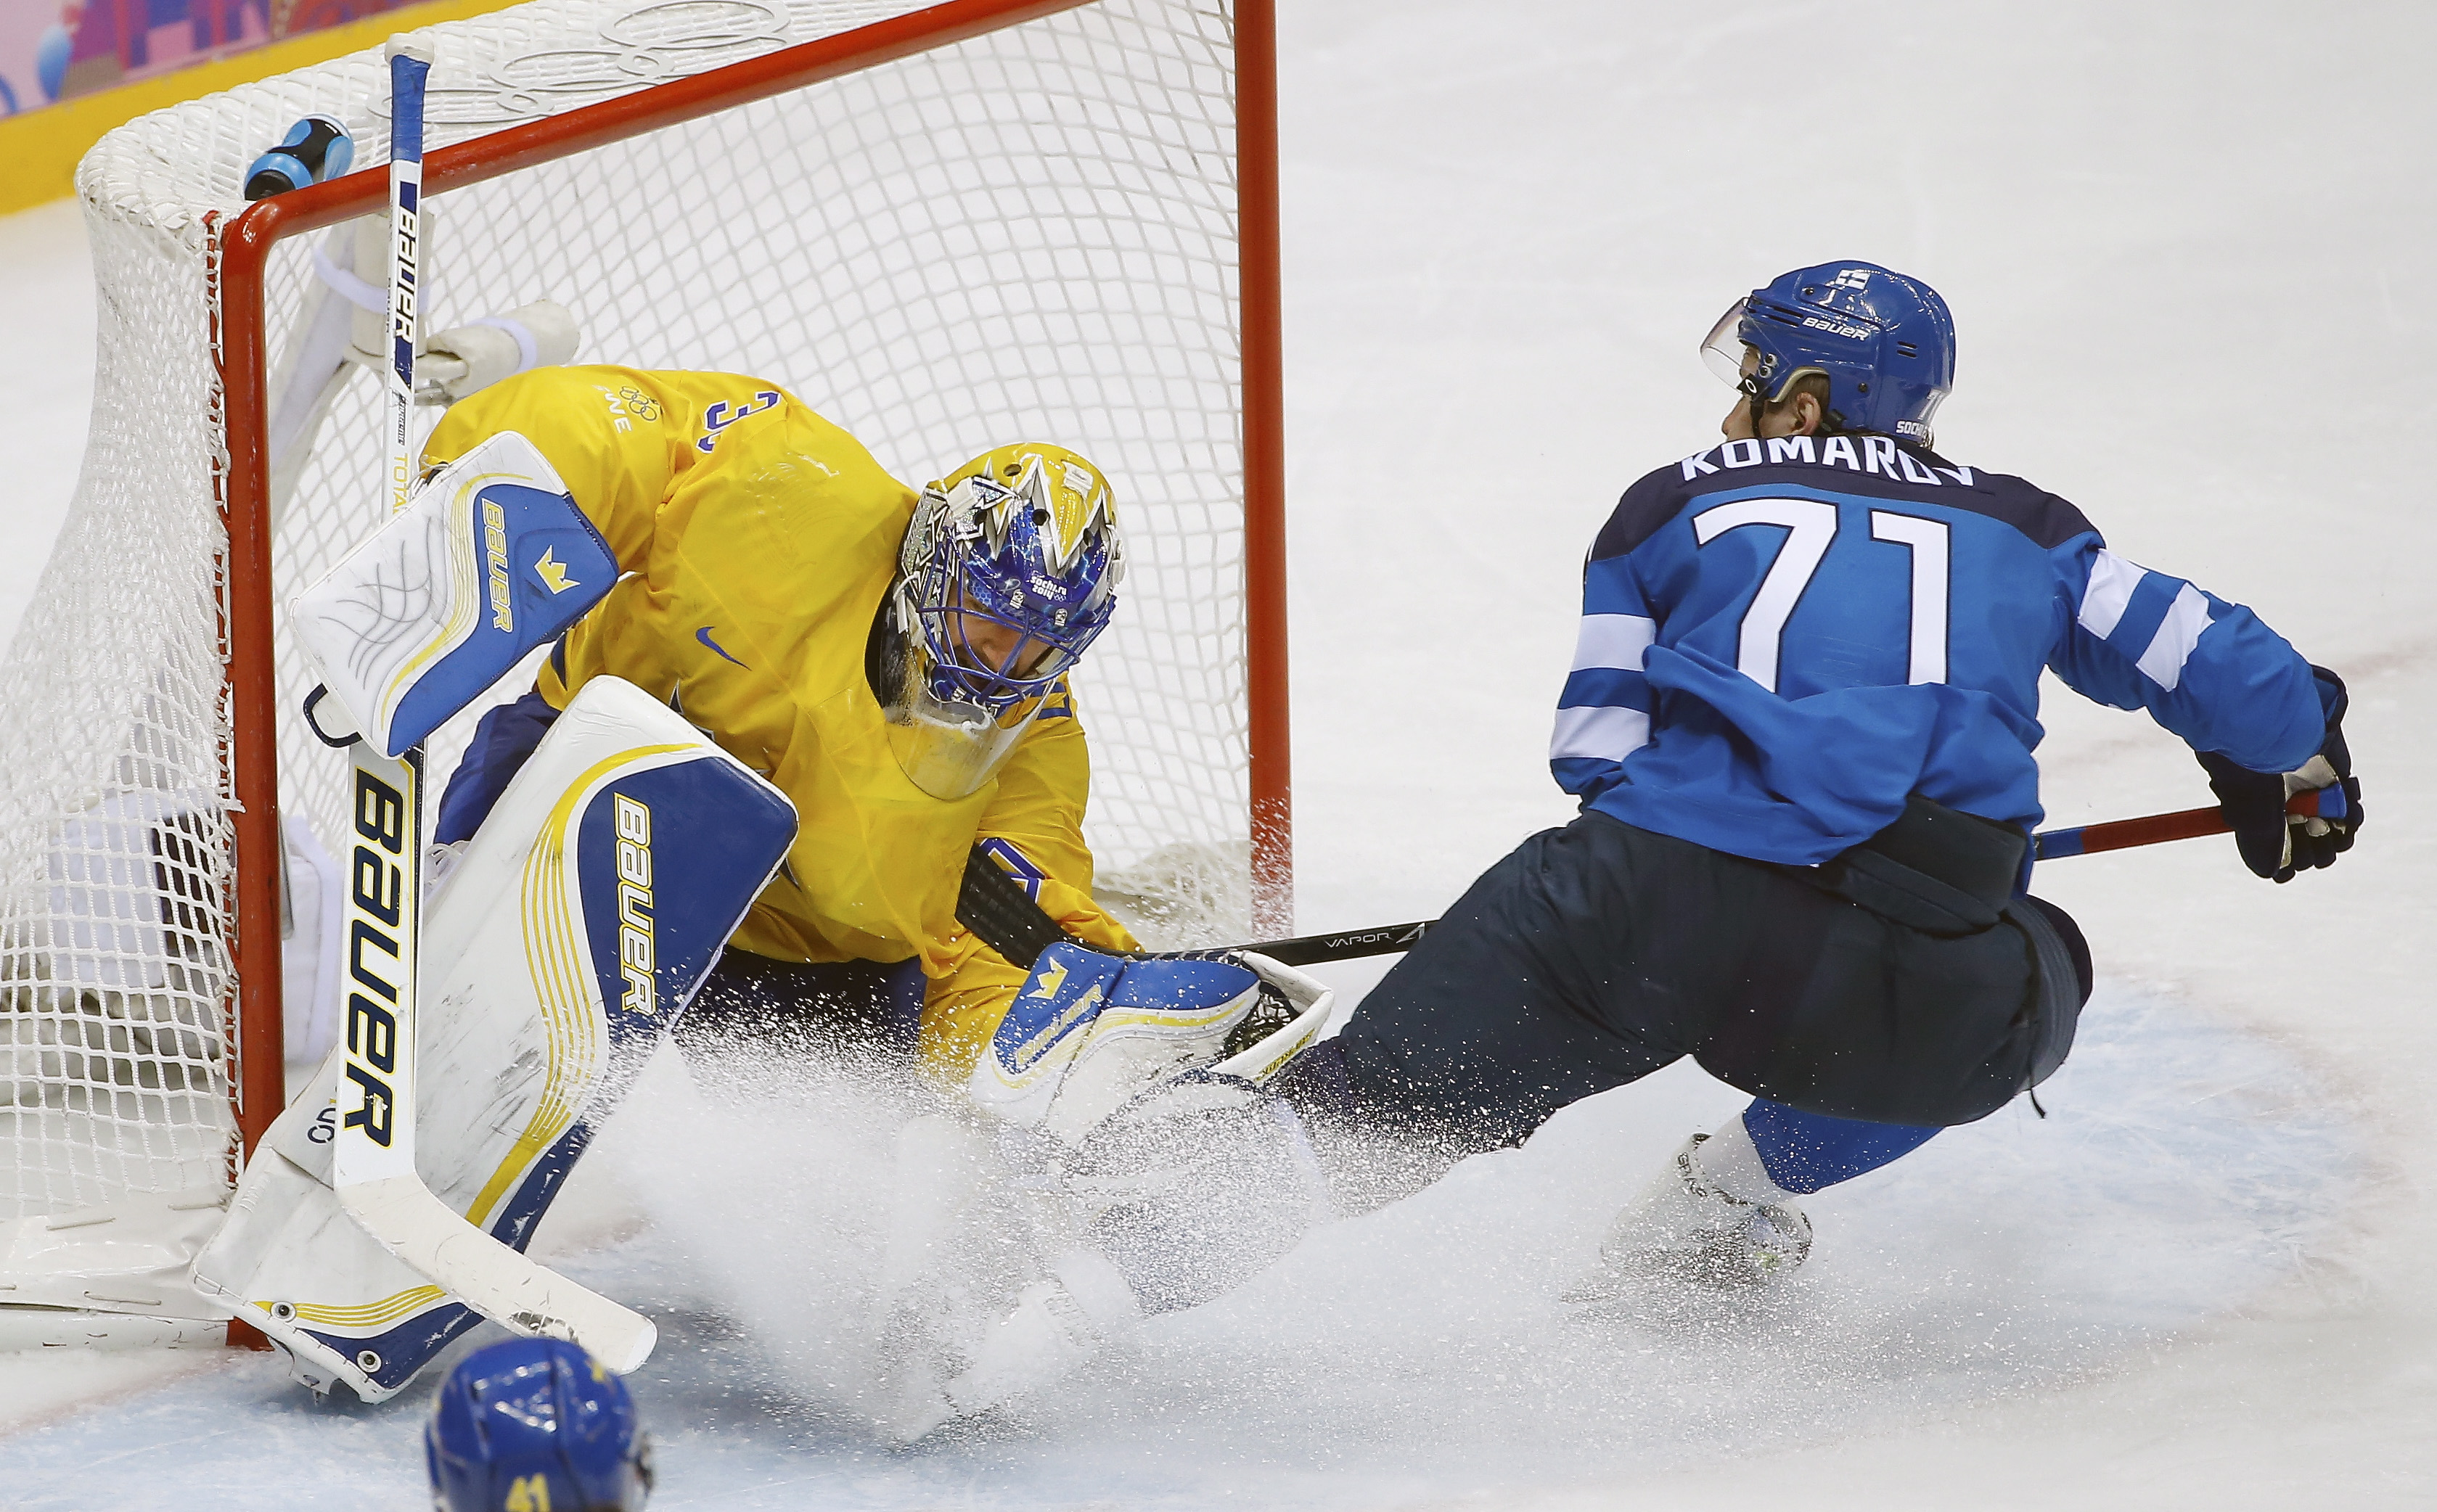 Finland forward Leo Komarov skates into Sweden goaltender Henrik Lundqvist during the third period of the men's semifinal ice hockey game at the 2014 Winter Olympics, Friday, Feb. 21, 2014, in Sochi, Russia. (Matt Slocum/AP)